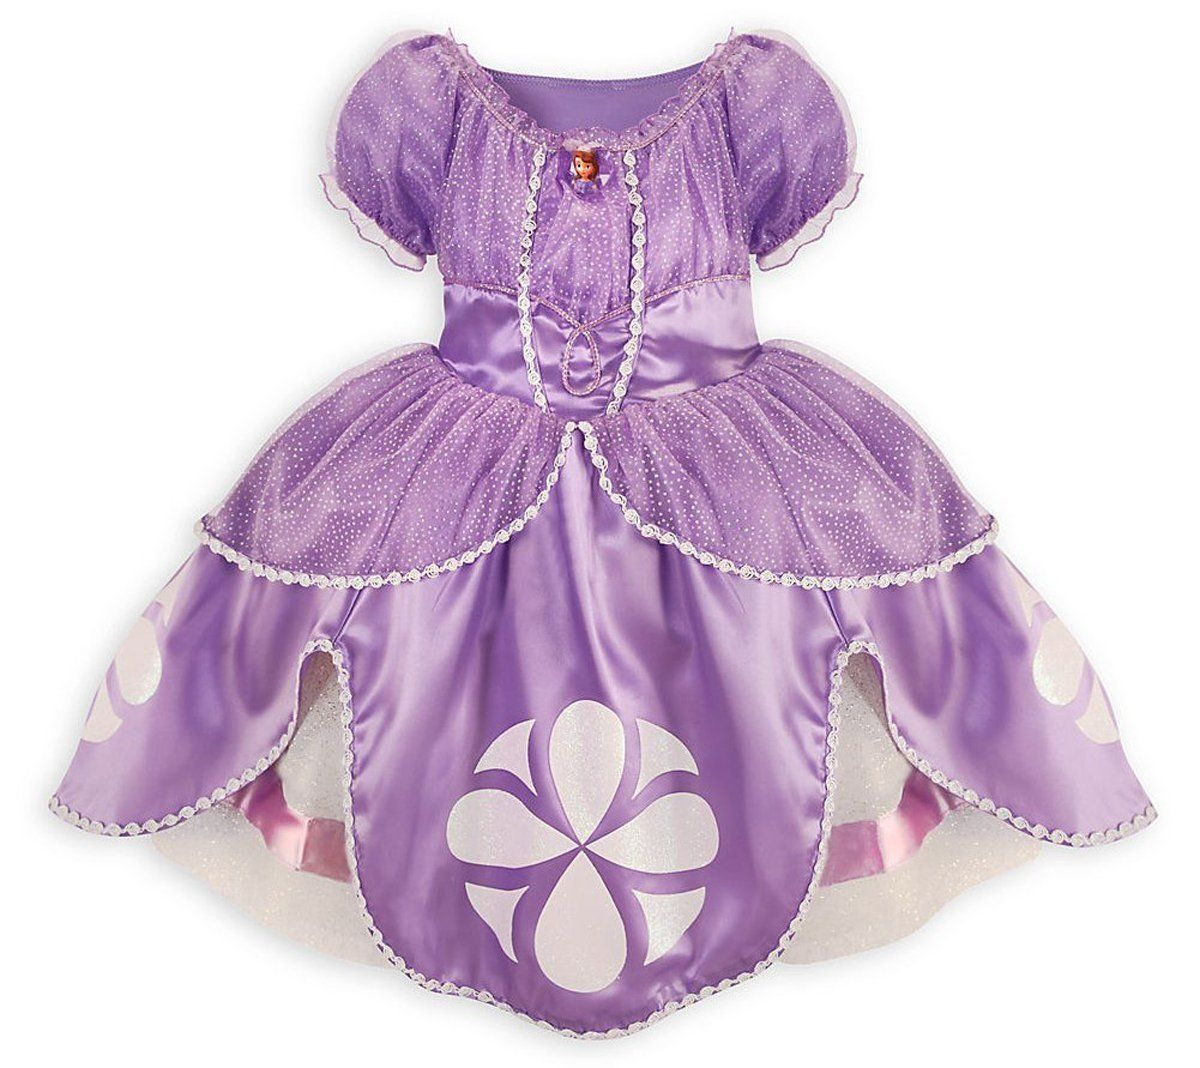 Disney Sofia The First Dress Costume For Girls Small 5 6 Sophia Trust Me This Is Great Click Princess Party Costume Sofia Costume Princess Sofia Dress